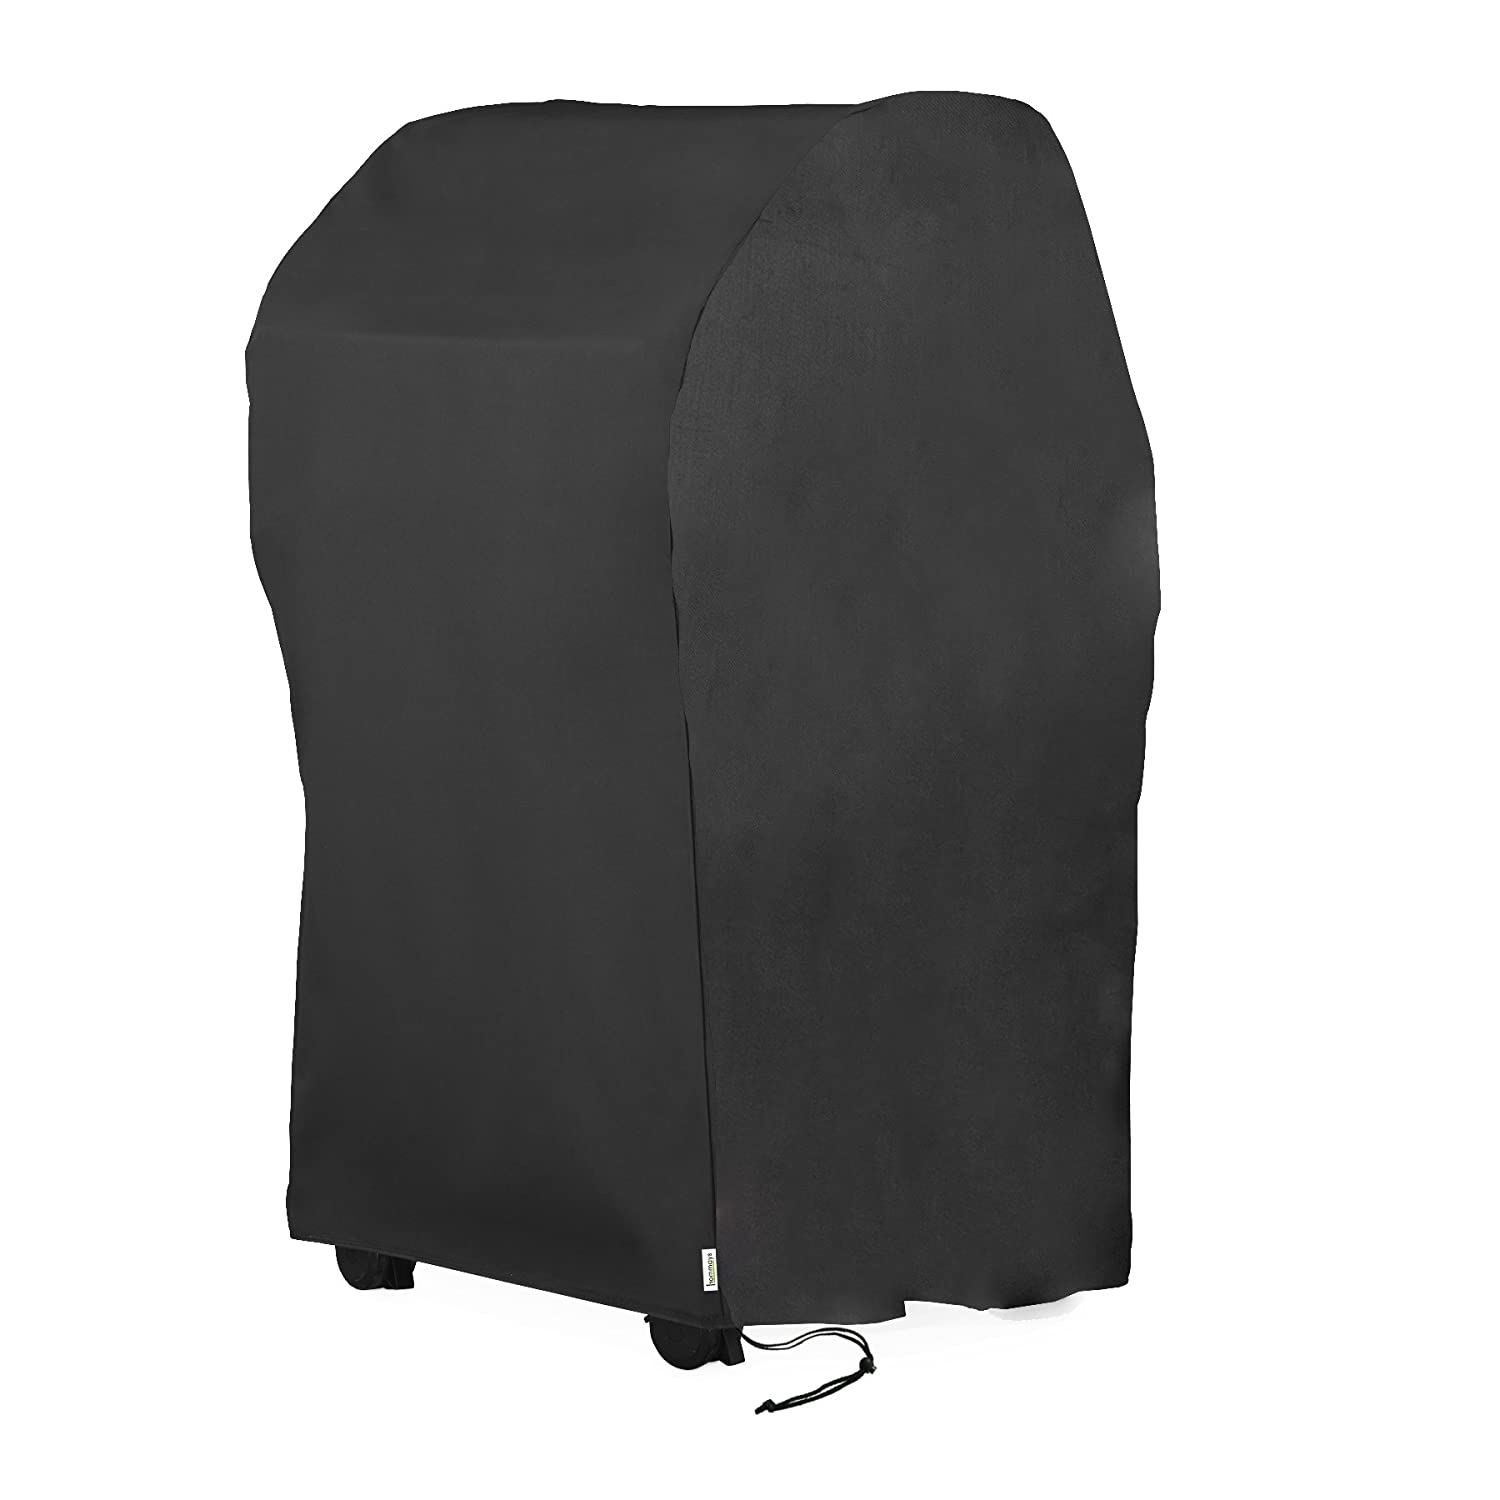 Barbecue Cover 30 Inch Small Waterproof Bbq Grill Cover For Weber